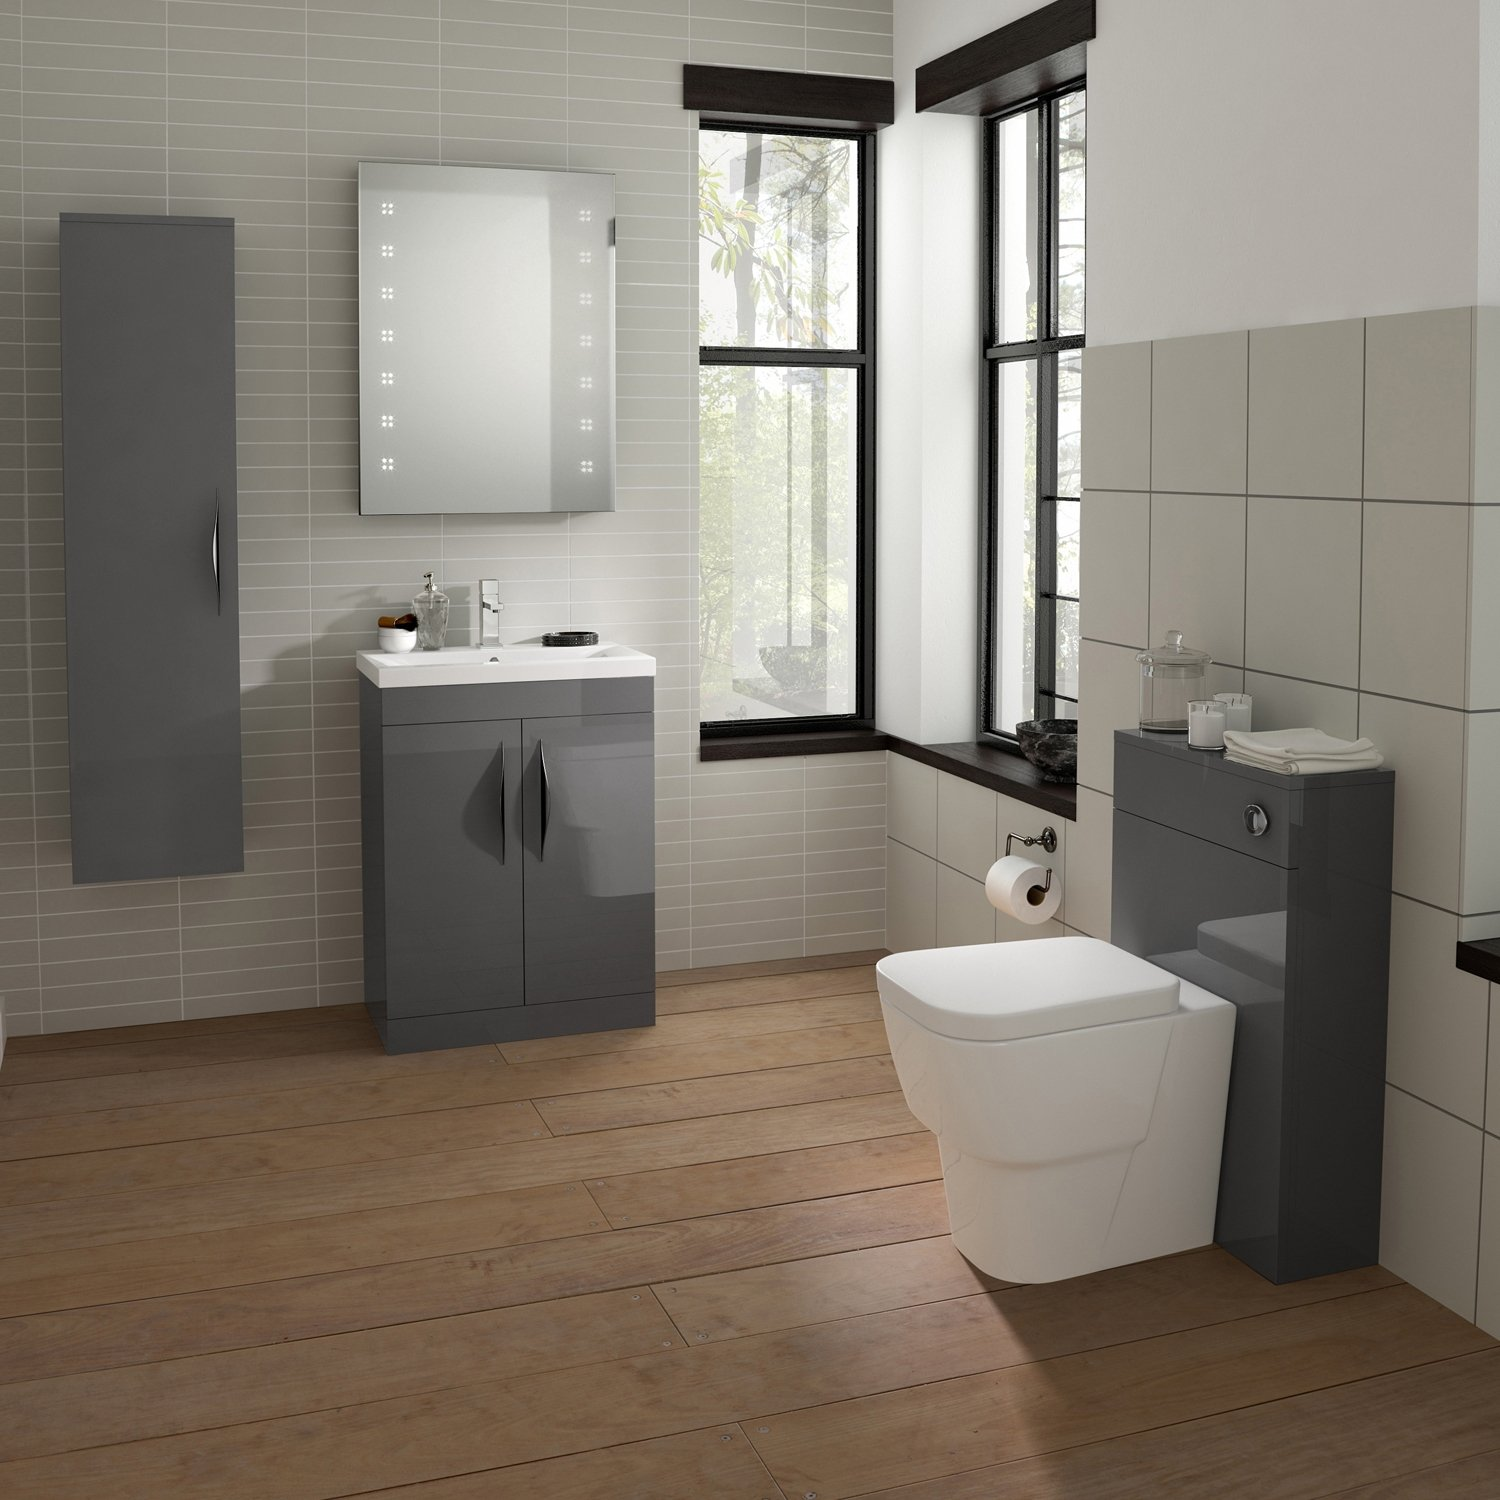 Hudson Reed Memoir Floor Standing Vanity Unit with Mid-Edged Basin 1 600mm W Grey Gloss 1 Tap Hole